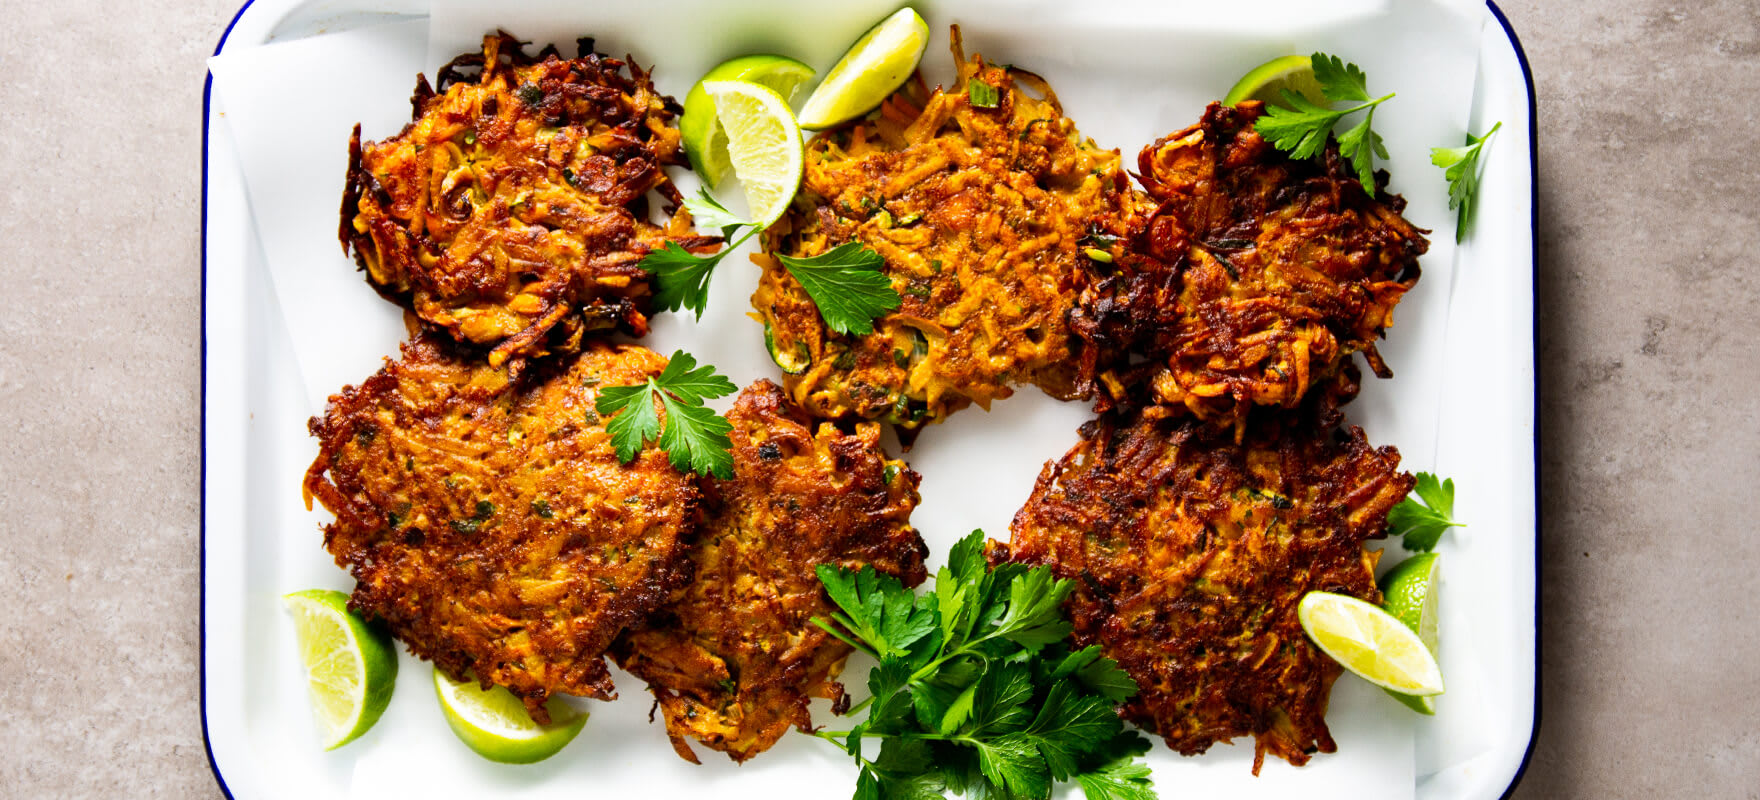 Veggie and haloumi fritters image 1